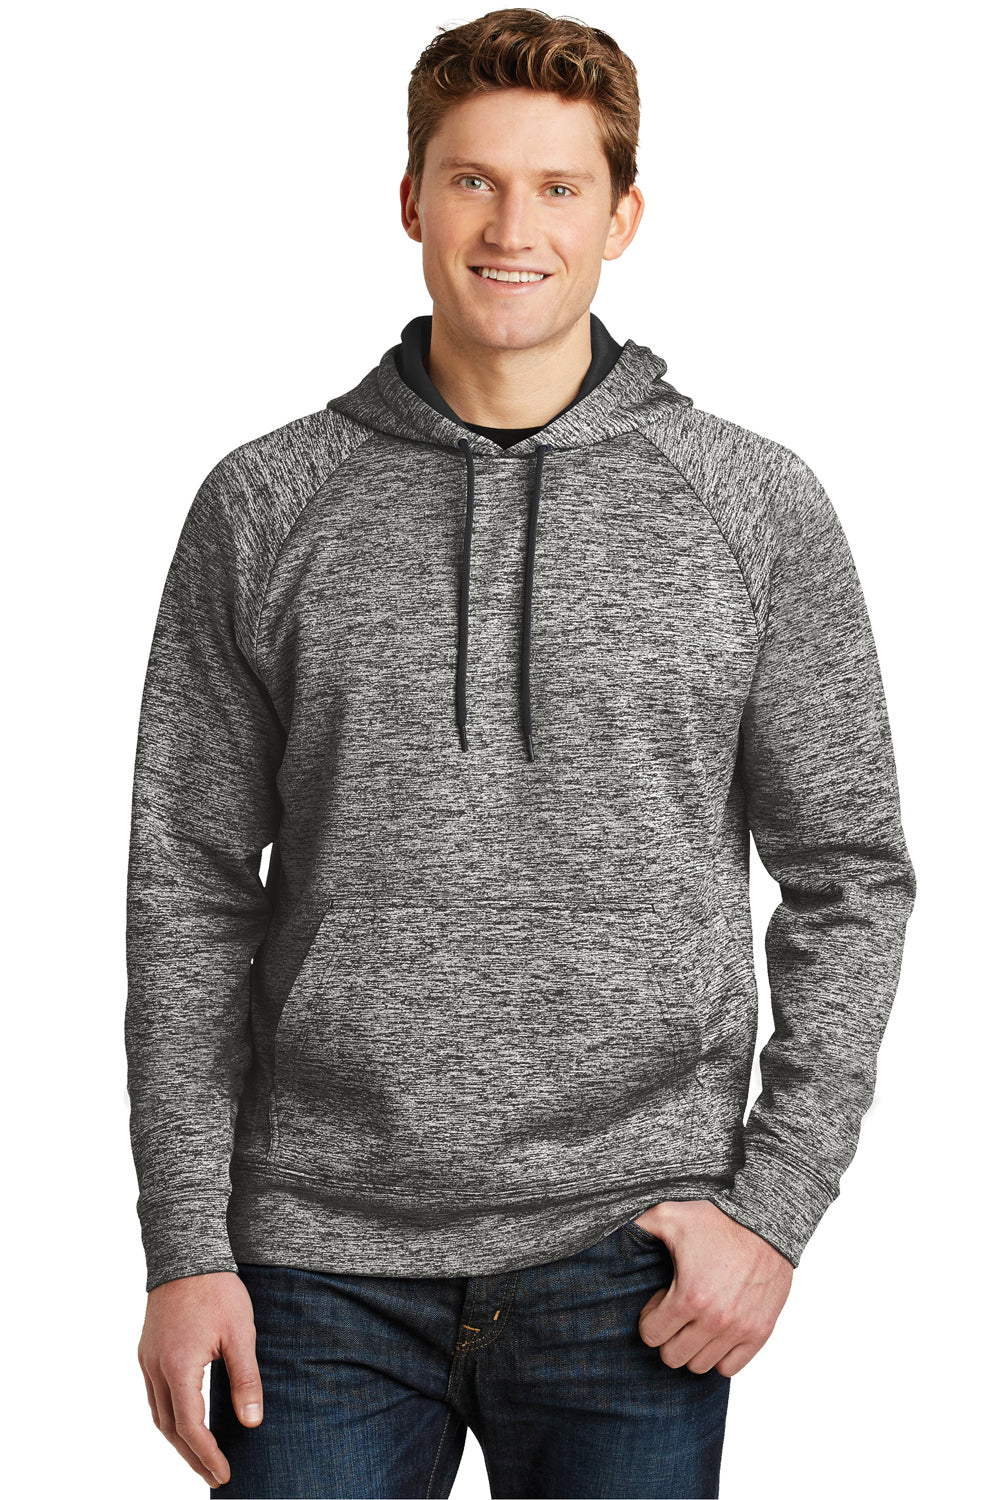 Sport-Tek ST225 Mens Electric Heather Moisture Wicking Fleece Hooded Sweatshirt Hoodie Black Front